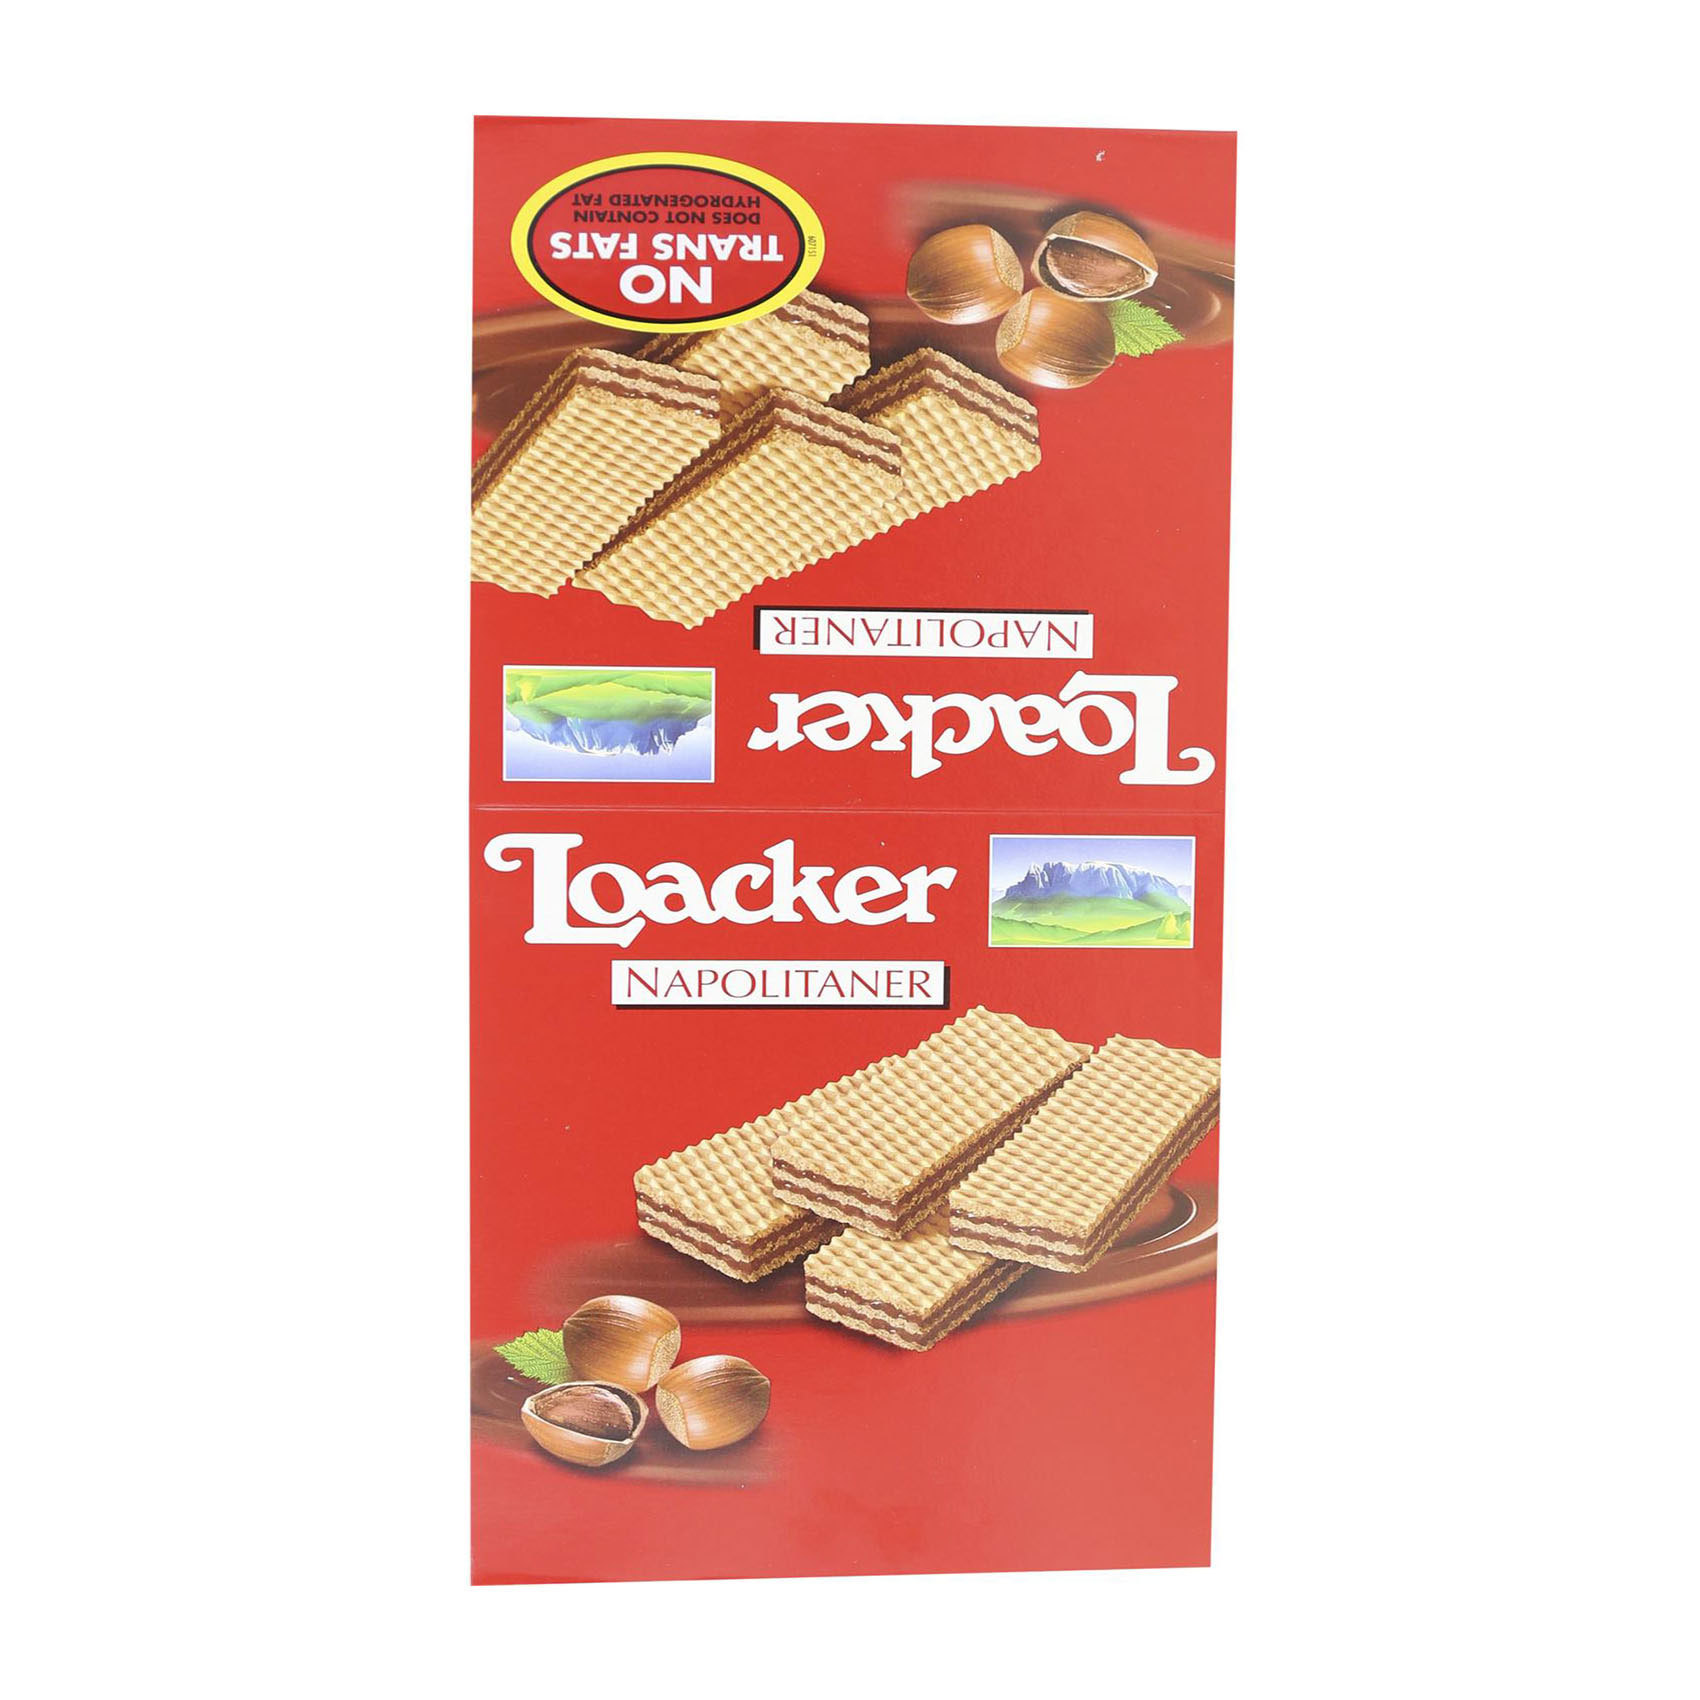 LOACKER NAPOLITANER WAFERS 45GRX25